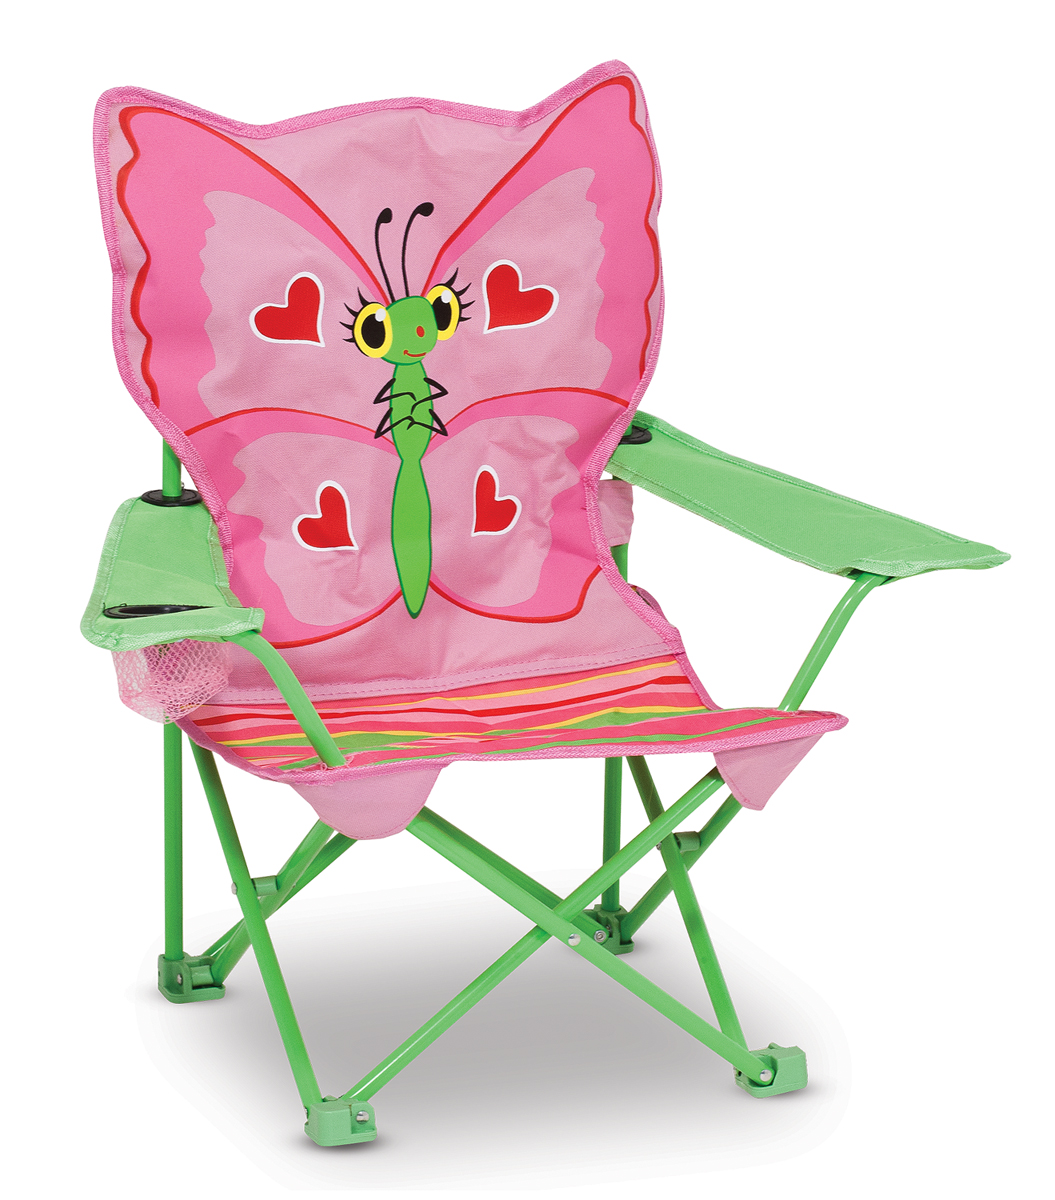 An Image of Melissa and Doug Bella Butterfly Child's Outdoor Chair